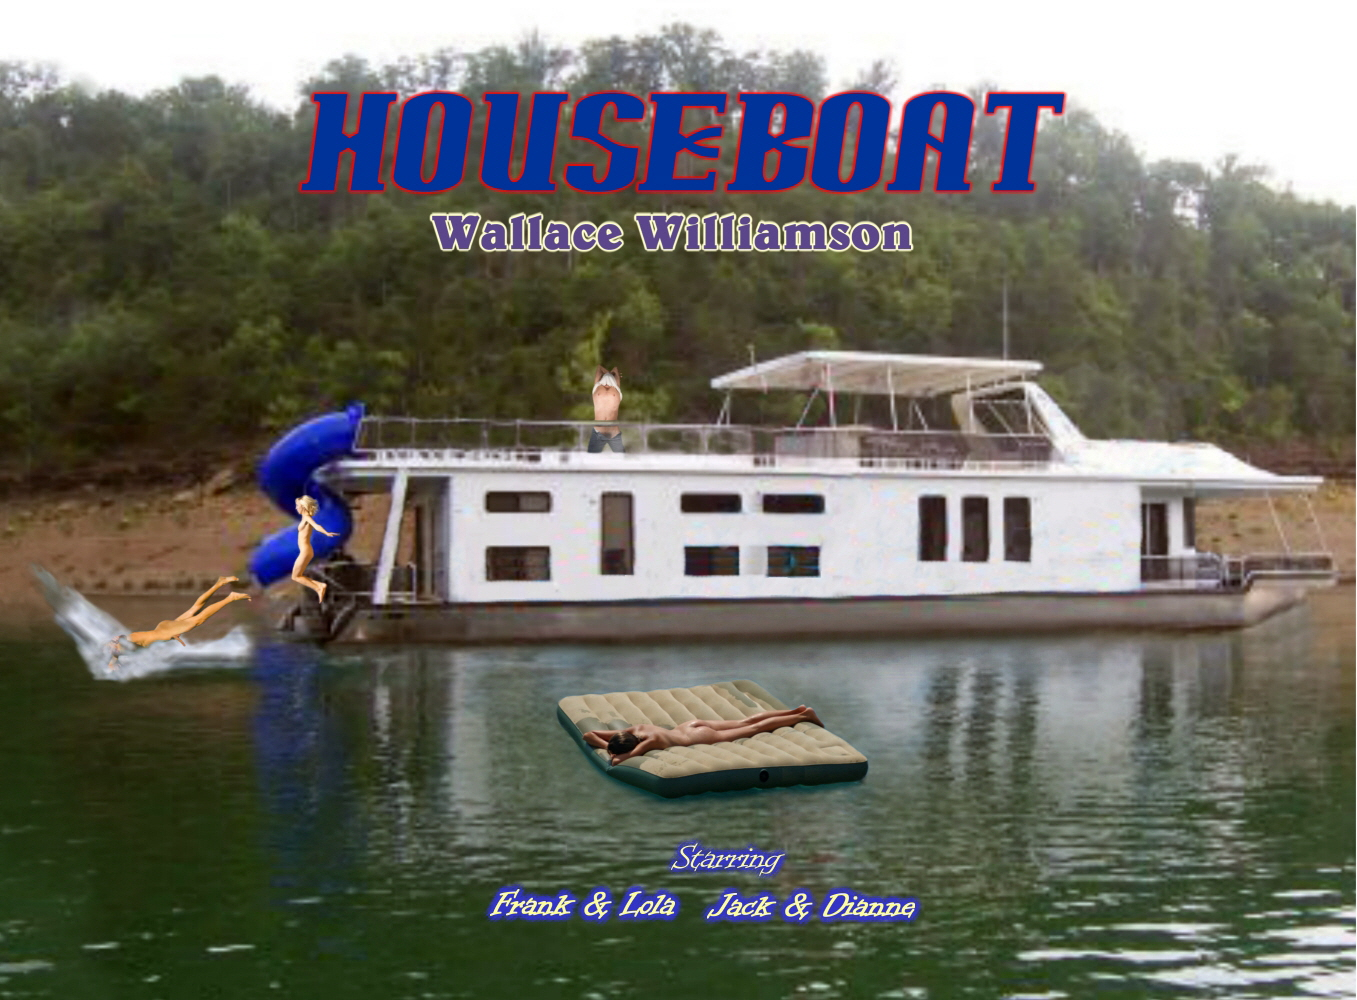 Here's The HouseBoat Cover Without Those Silly Words Covering Up The Good Stuff!!  Makes You Want 2 Read The Story, Doesn't It?  Click The Pic When You Forget Who's Who!!!